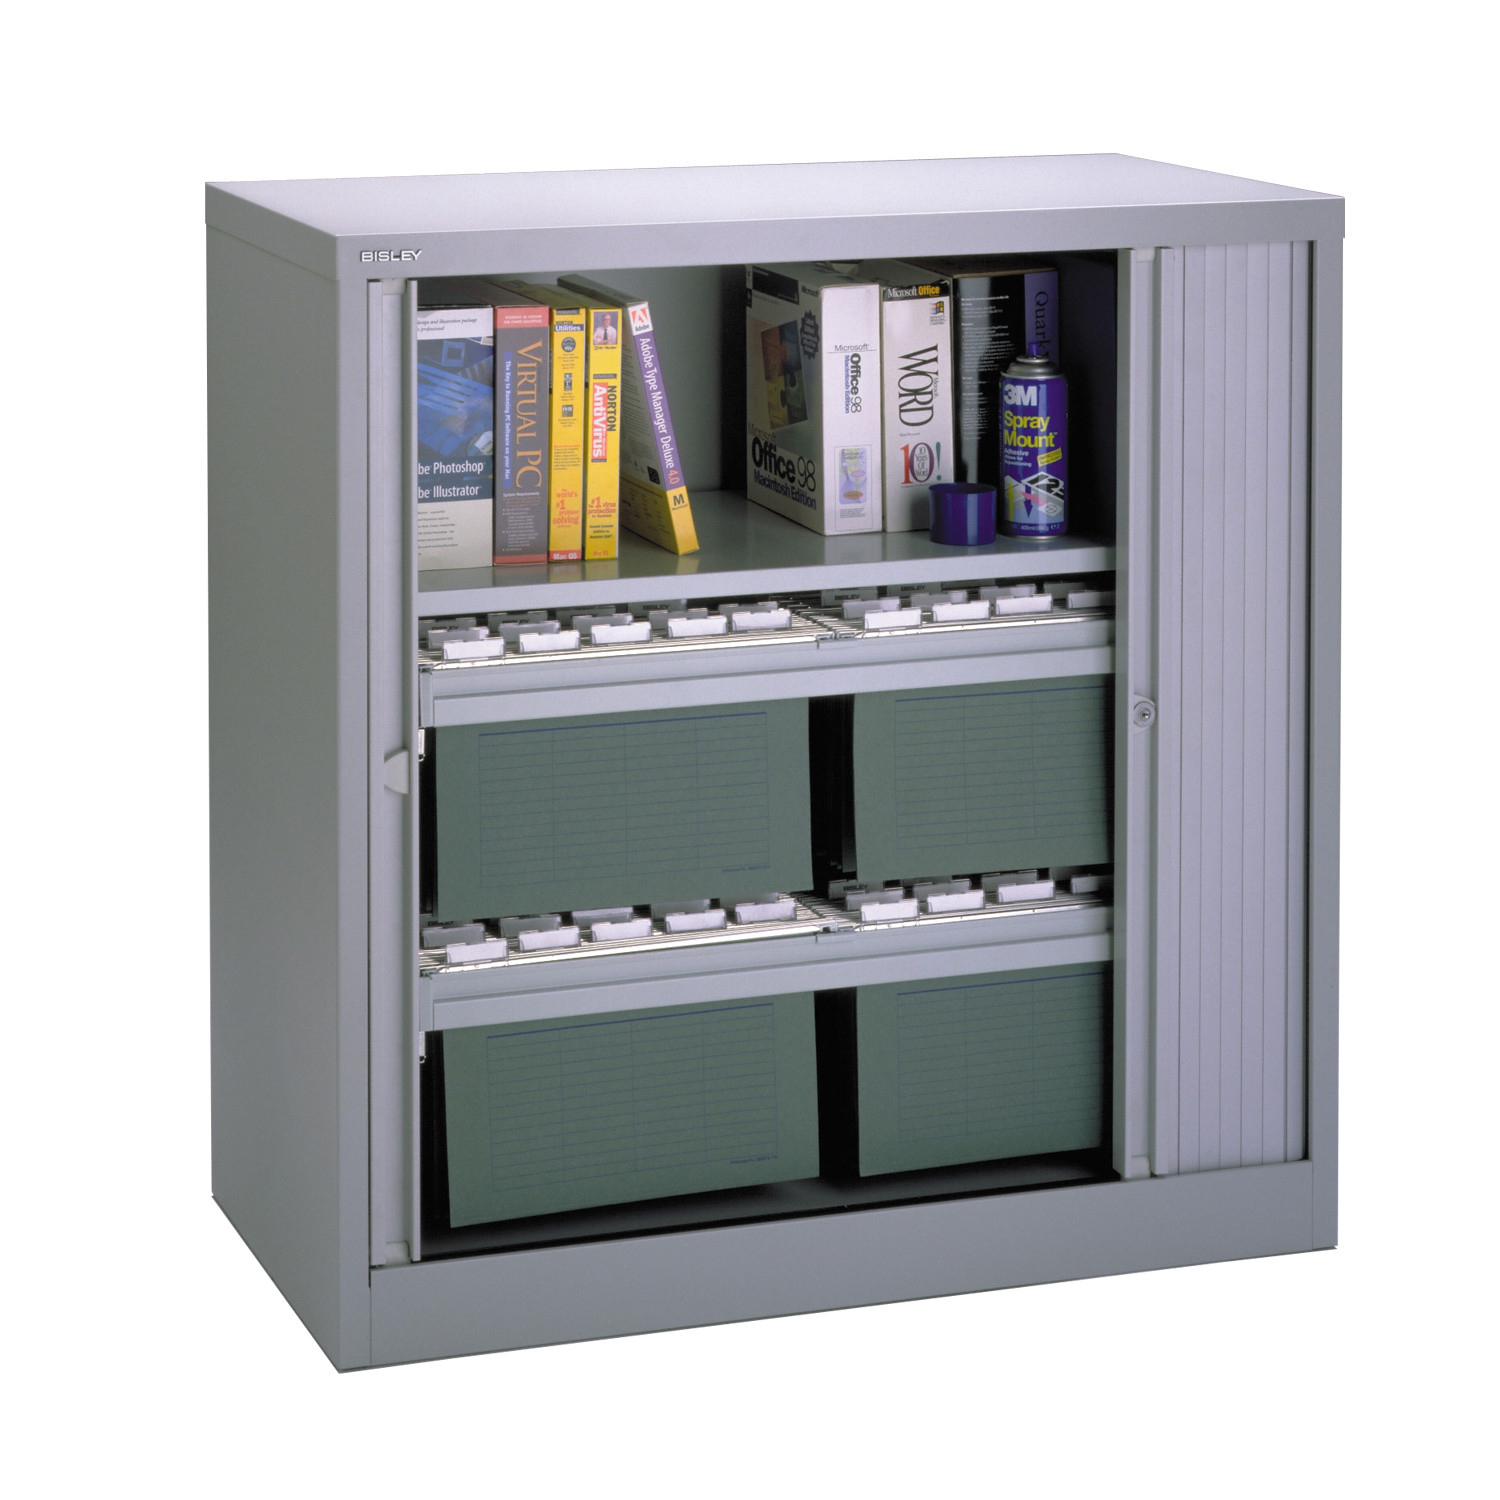 Contract Side Opening Unit with 3 Shelves